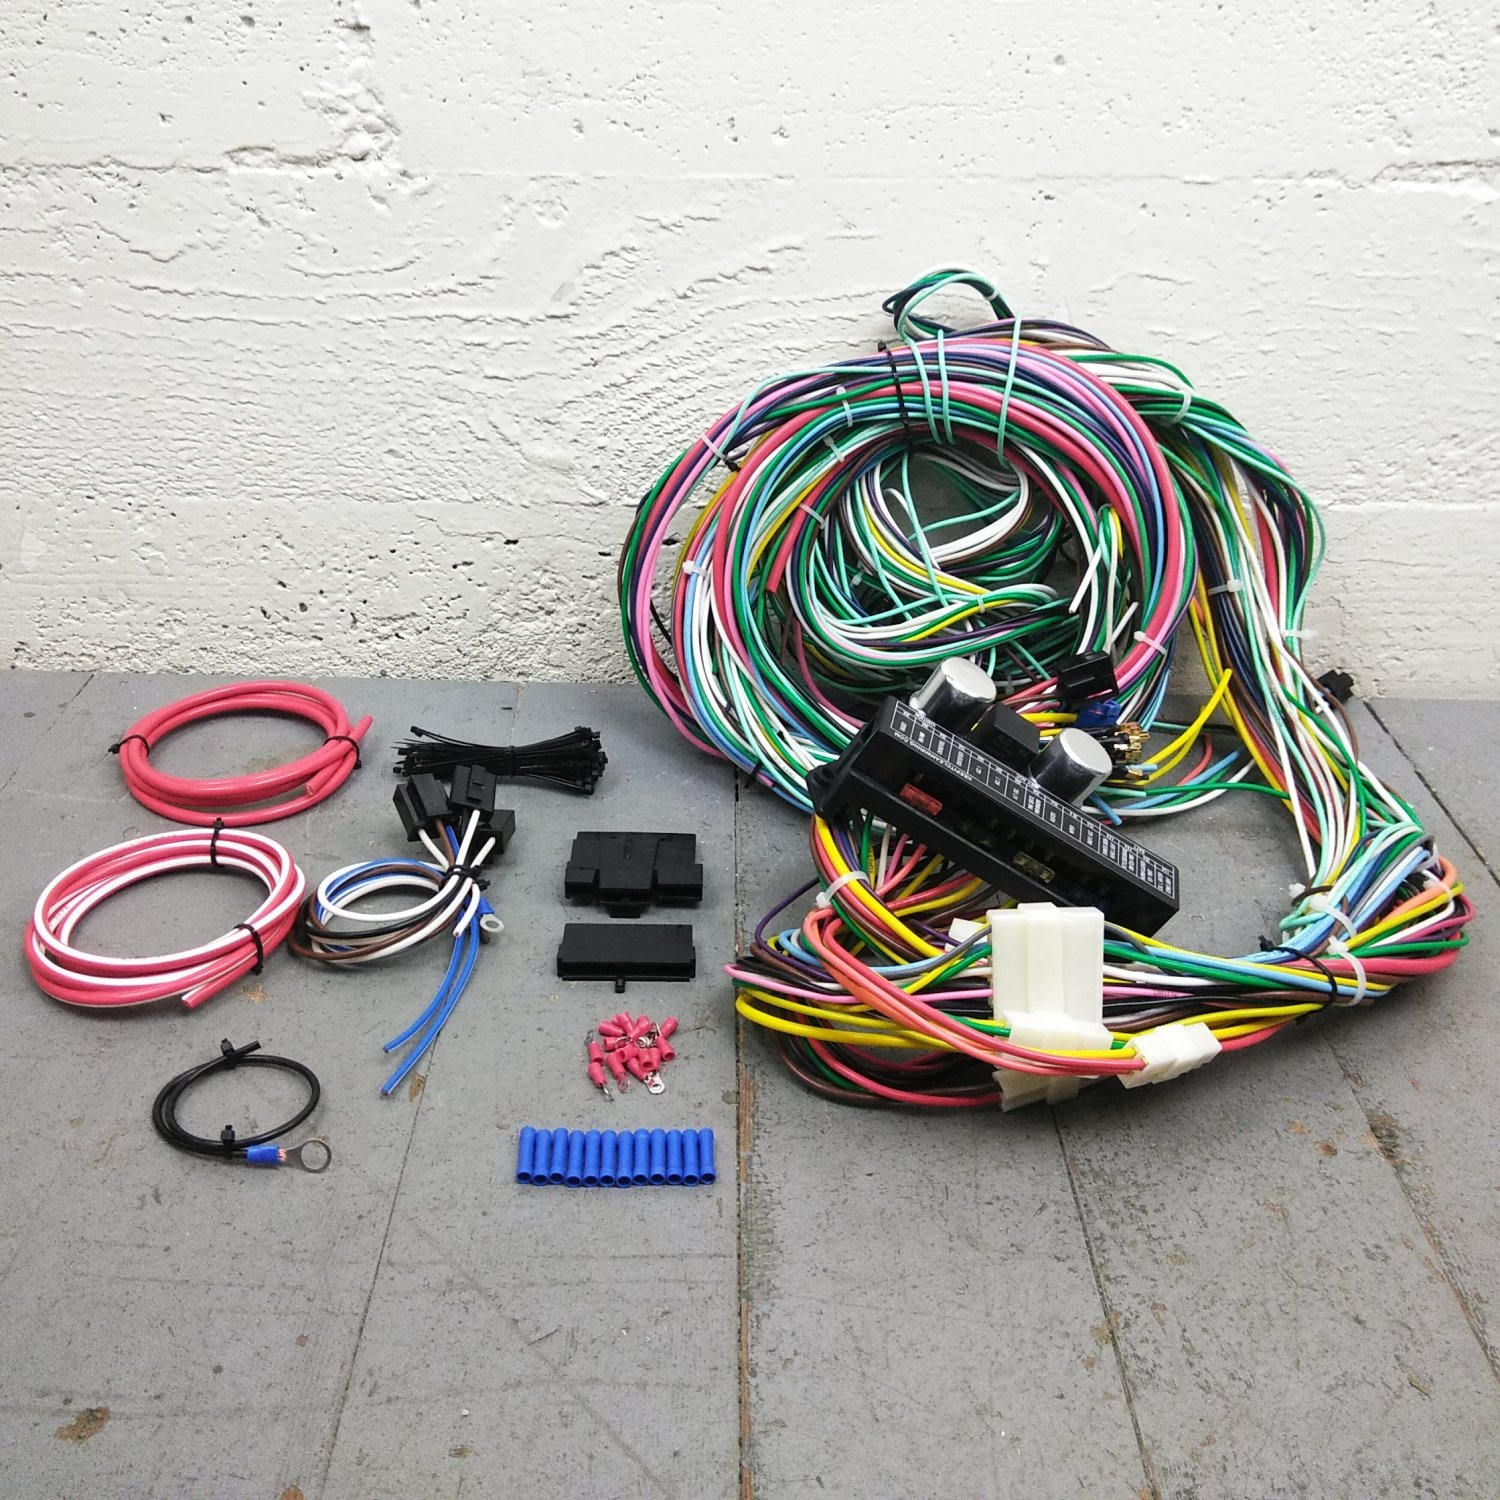 1970 - 1971 Plymouth / Dodge Wire Harness Upgrade Kit fits painless update  new. Bar_Product_Description_C